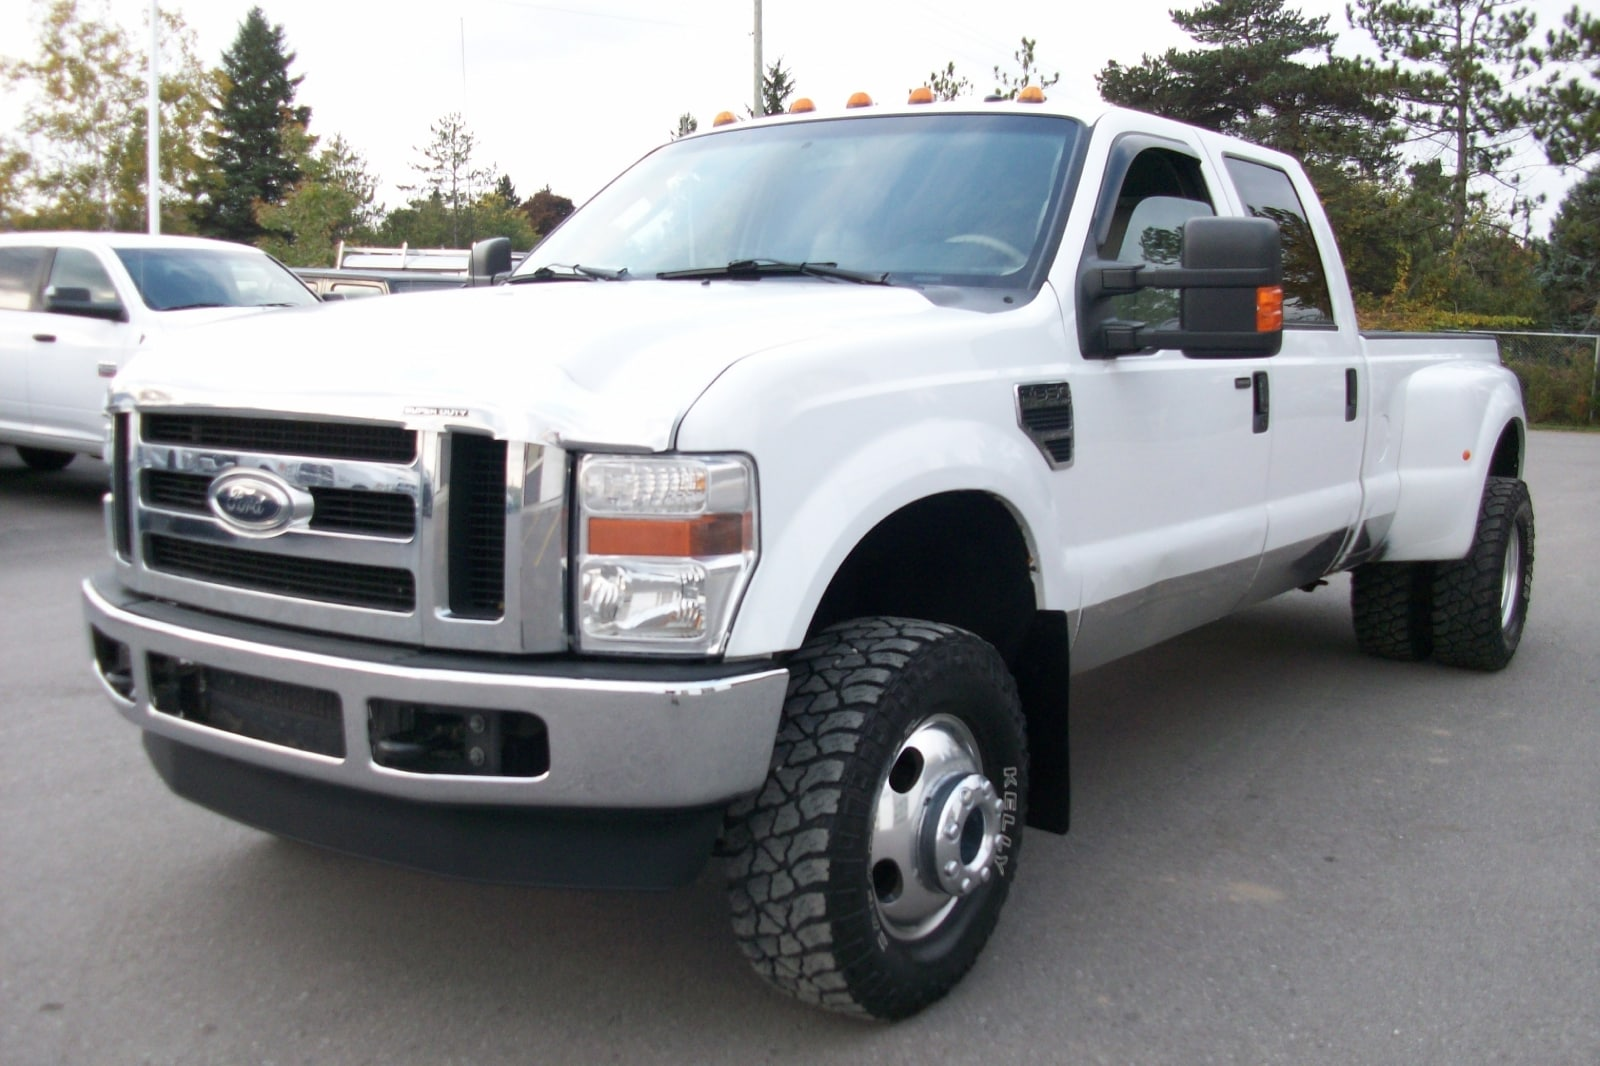 2008 Ford F-350 Lariat DIESEL 4X4 DUALLY CREW Truck Crew Cab